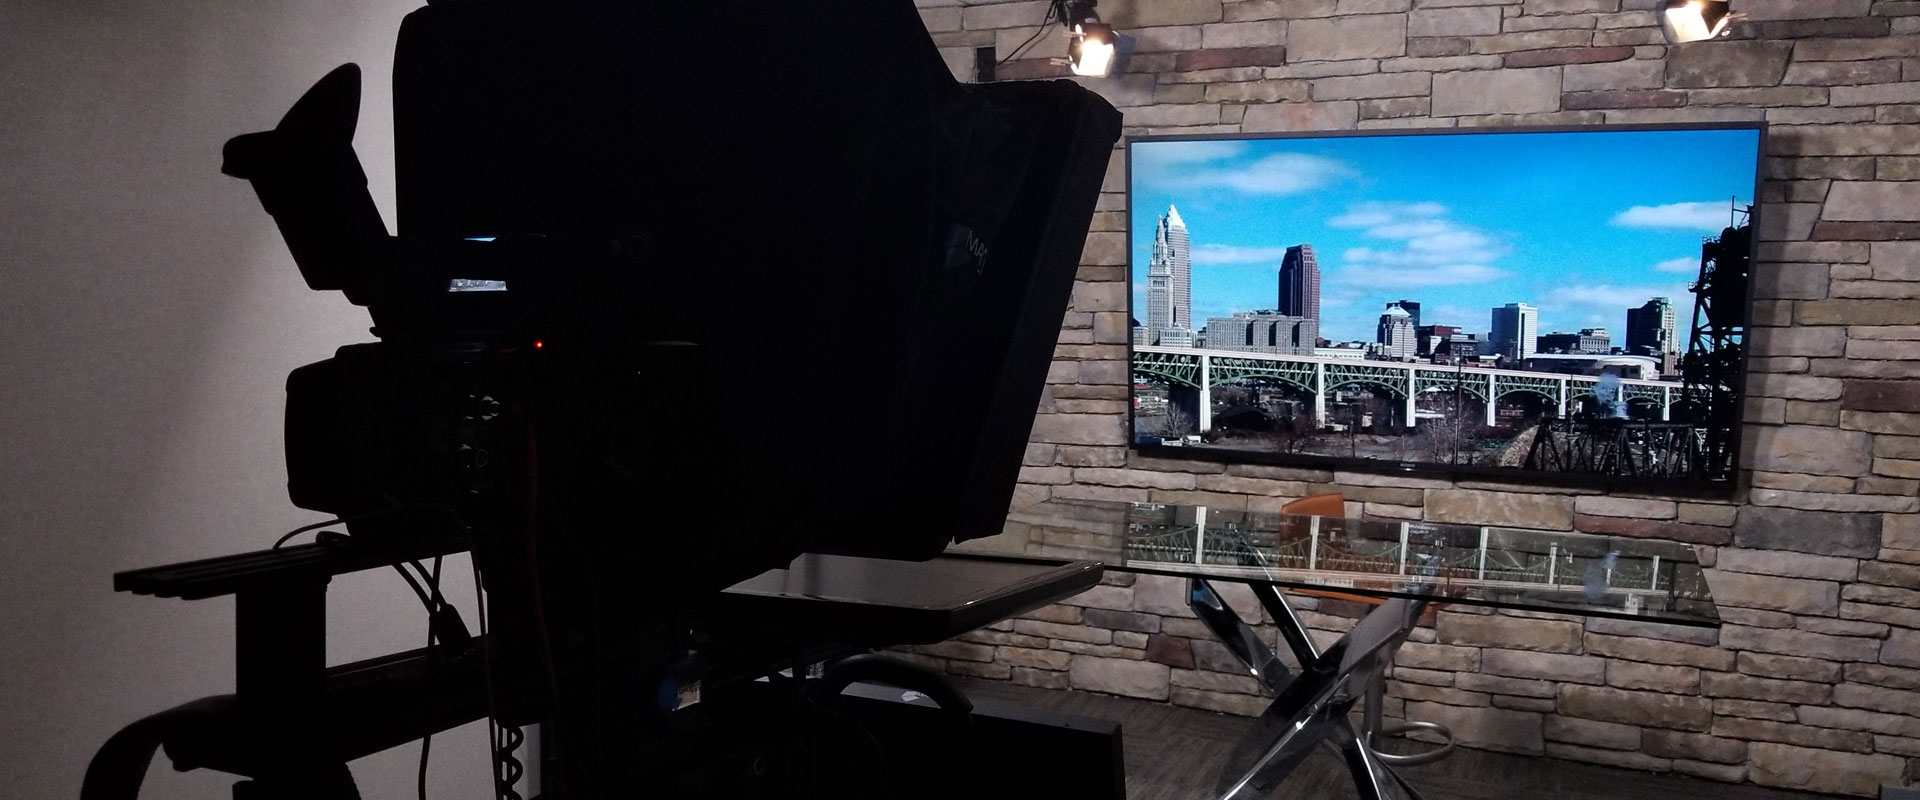 Cleveland media studio green screen teleprompter 4K cameras